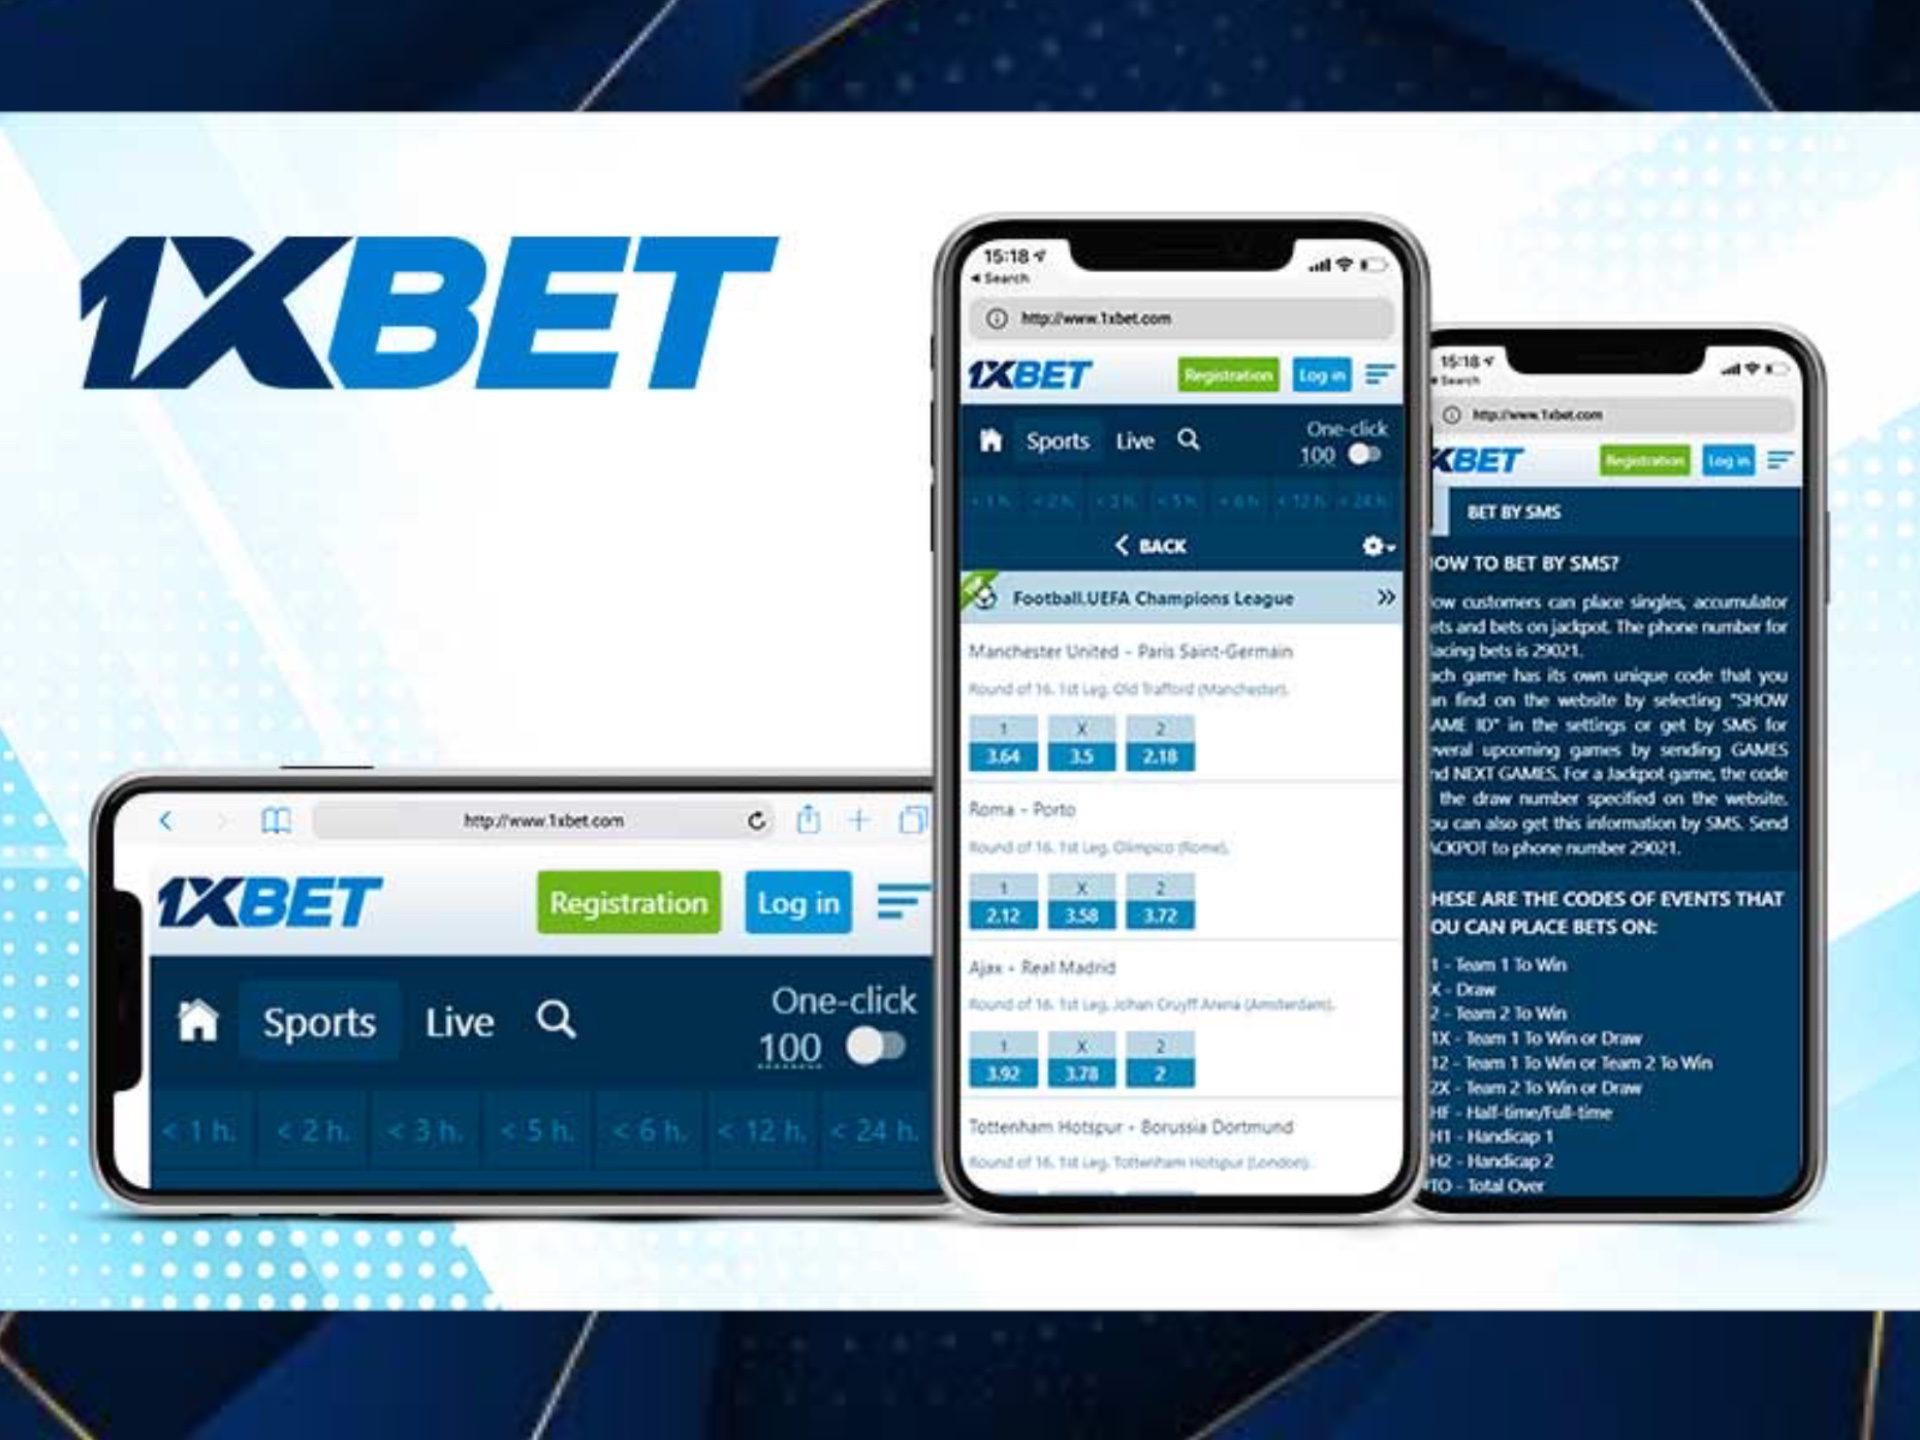 You can opern a web version of 1xbet on your mobile phone and bet via it.